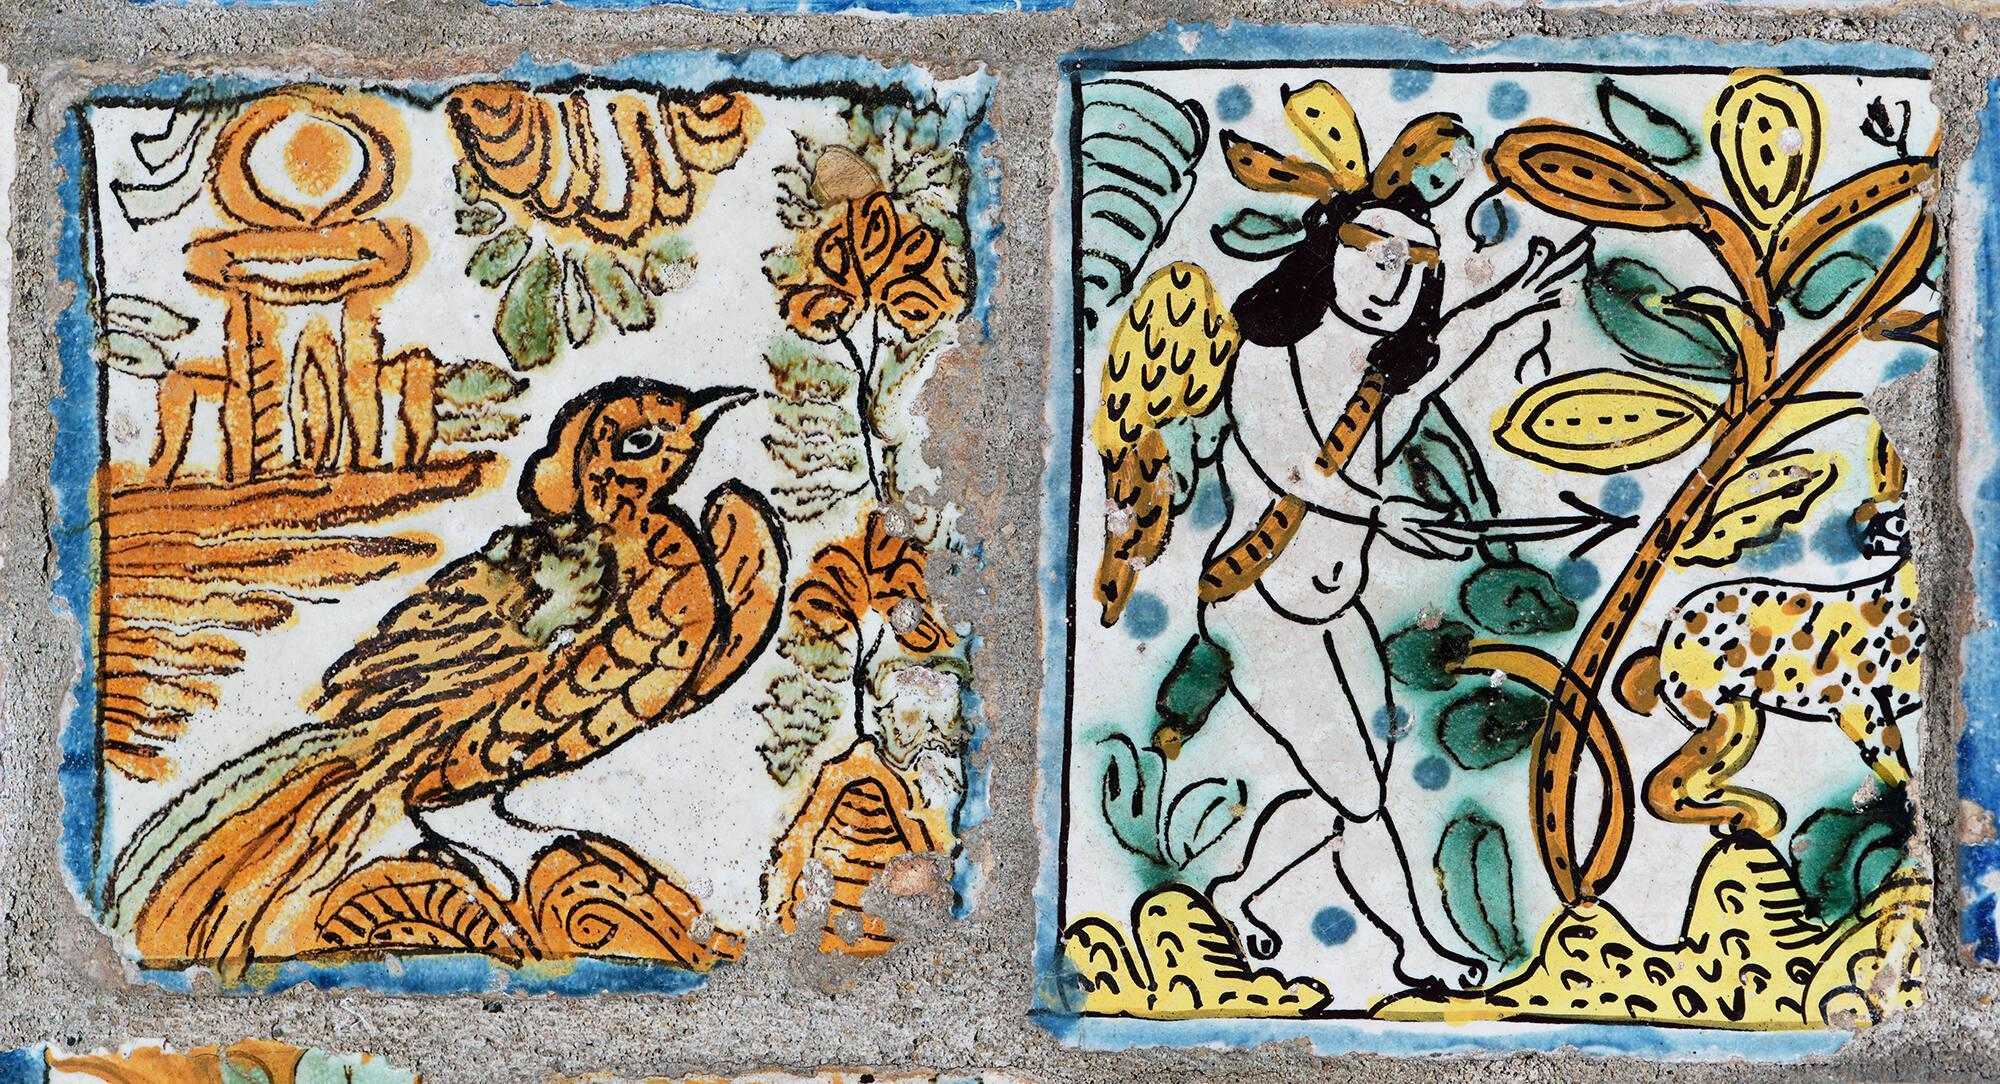 A tile with an orange bird painted on the left and a tile with a naked person painted on the right.